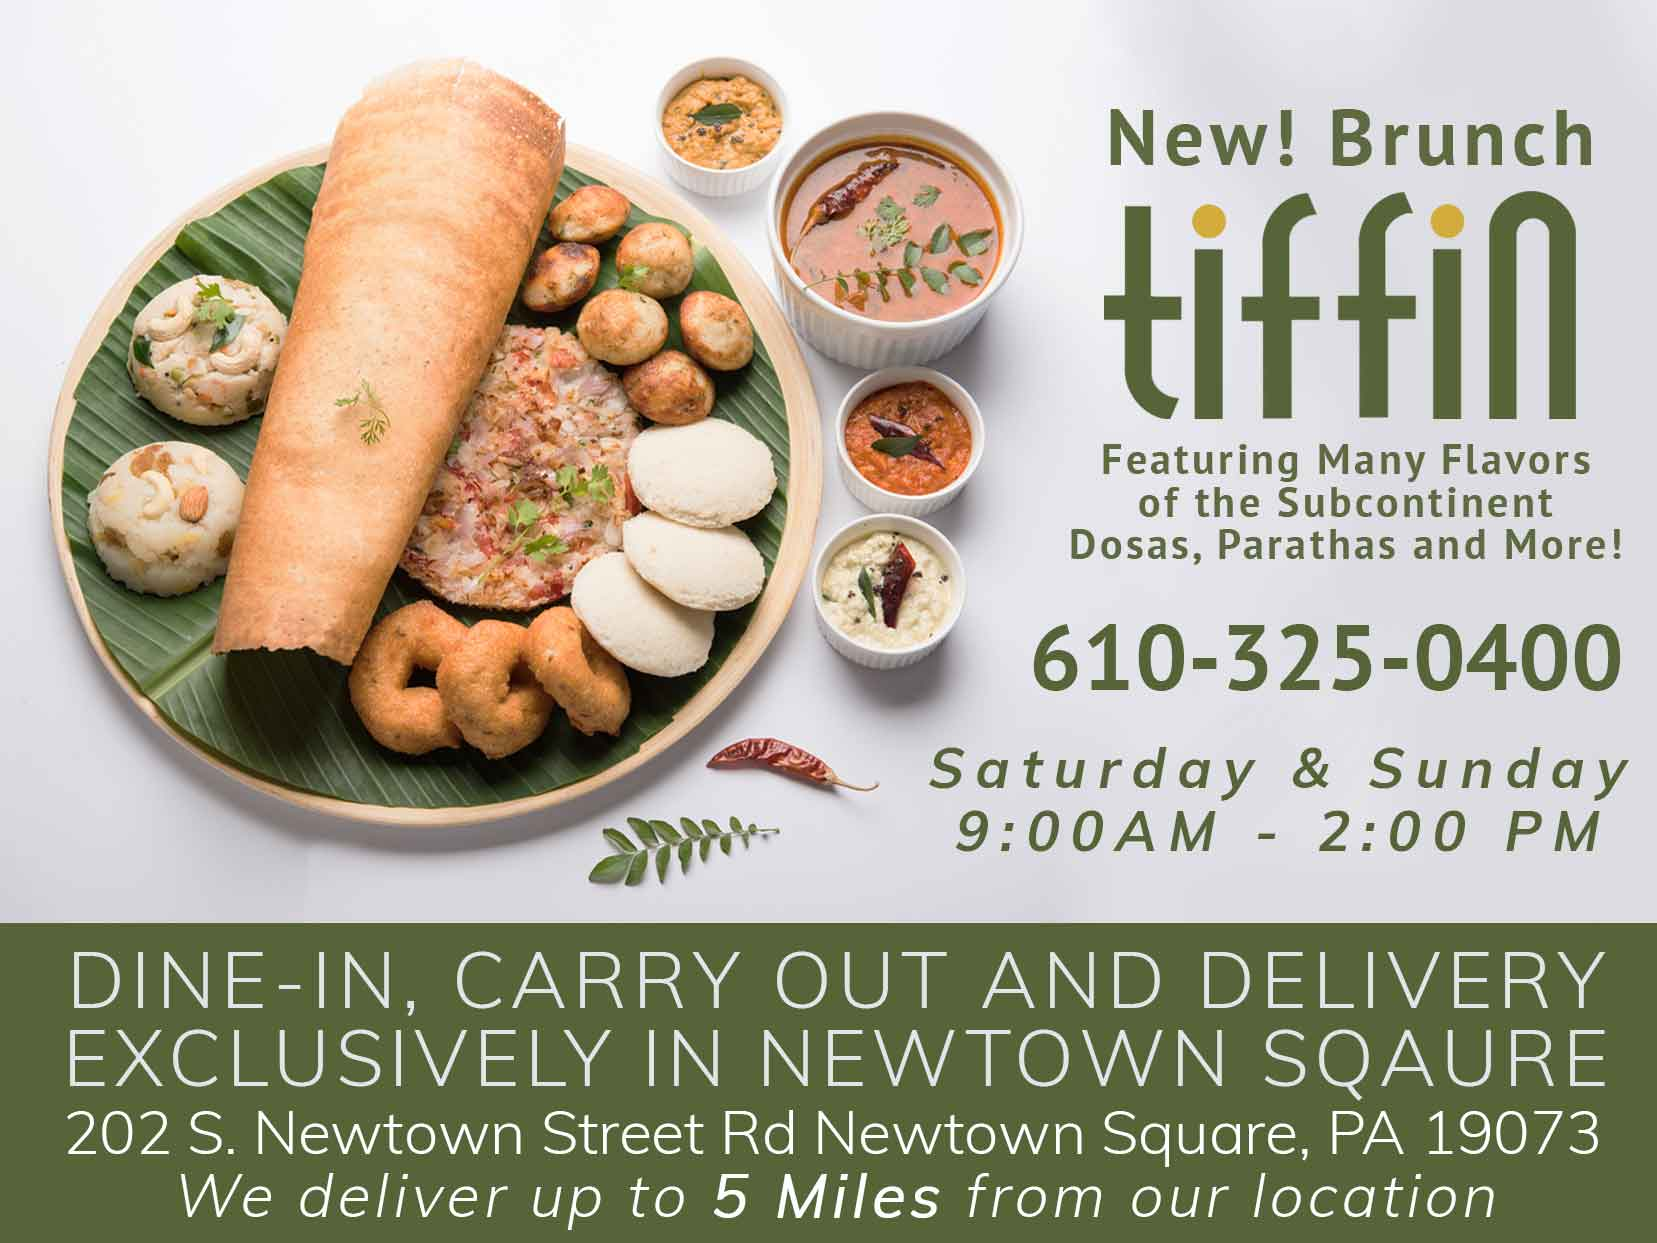 Tiffin Newtown Square Menu